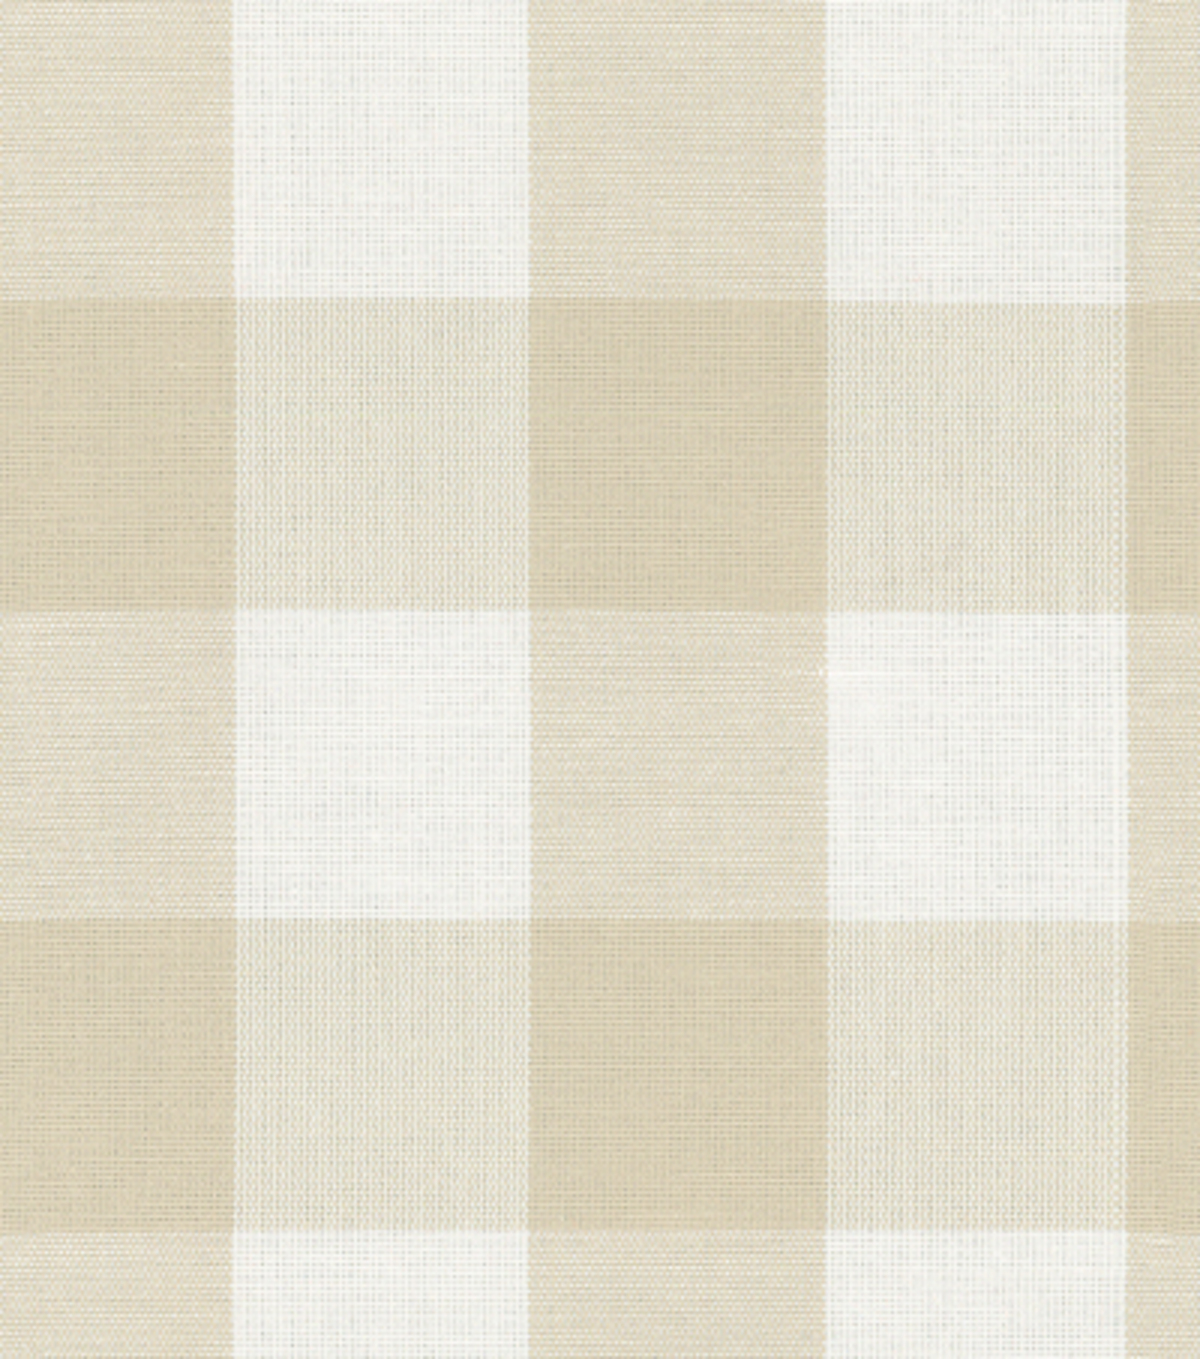 Home Decor 8\u0022x8\u0022 Fabric Swatch-Covington Sandwell